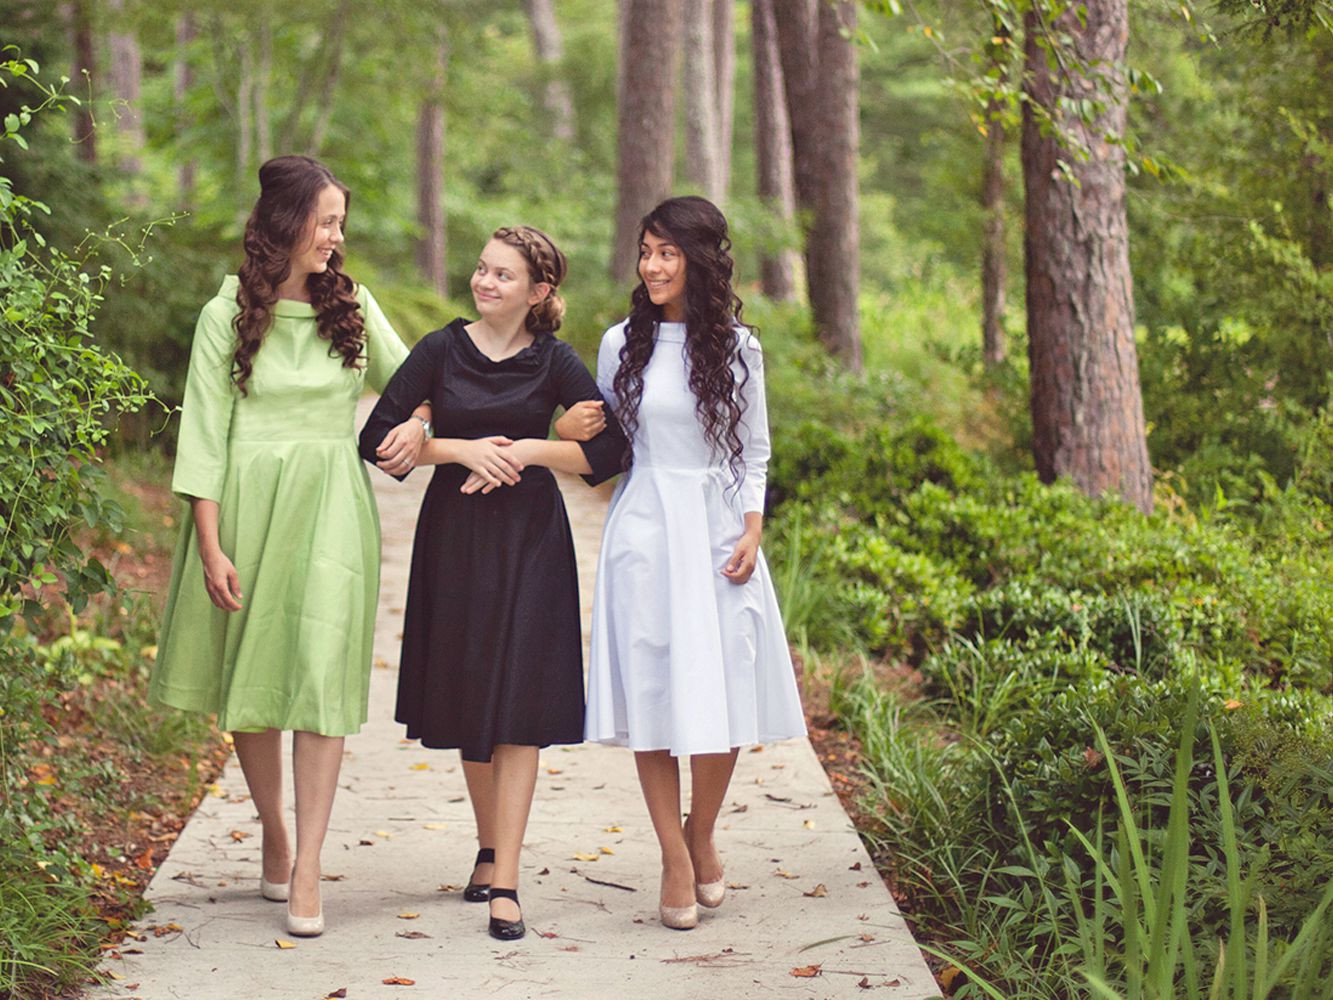 United Pentecostal Dress Rules for Modesty